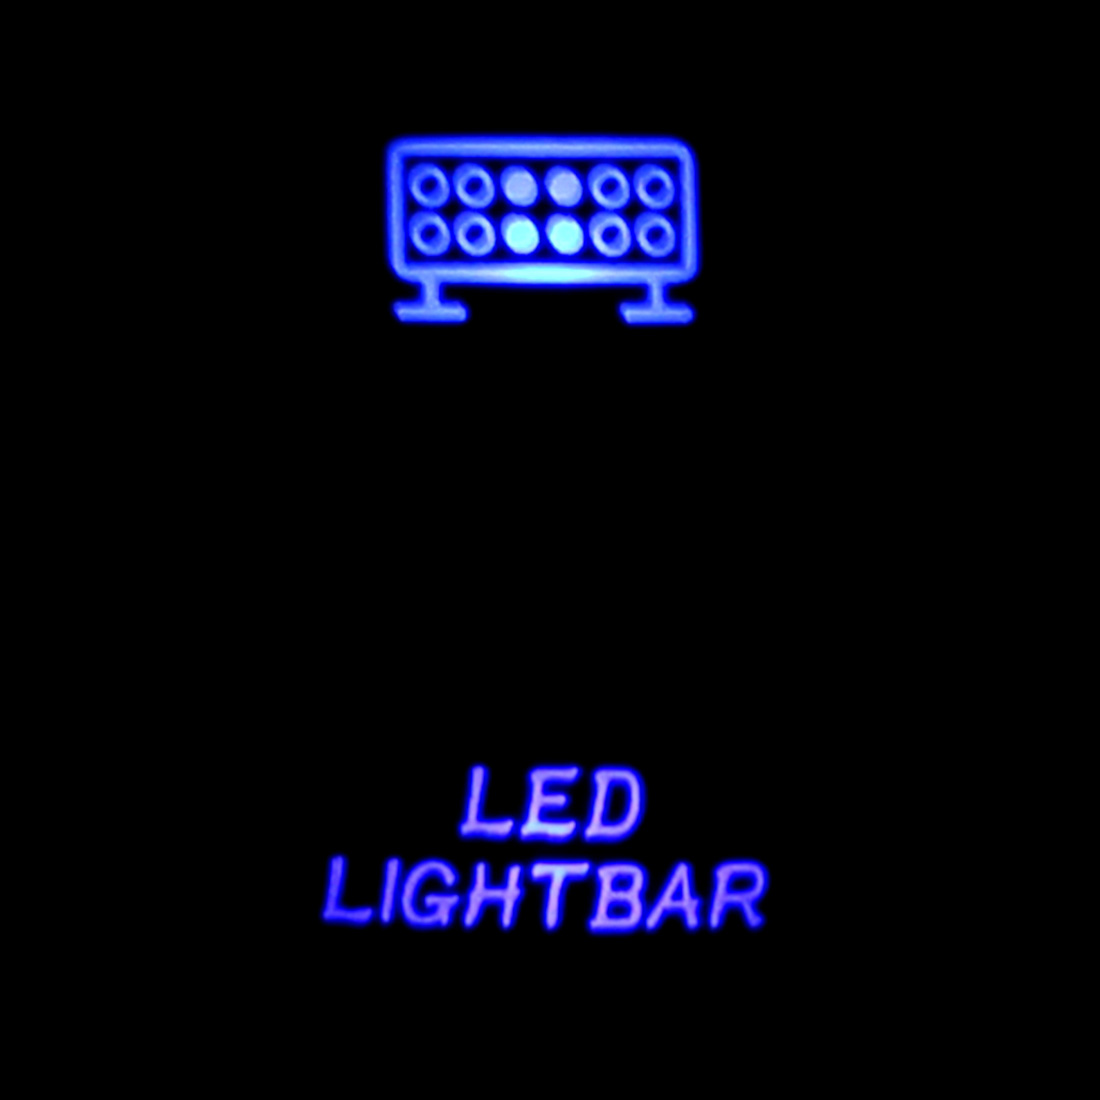 Dual Blue LED Backlit Laser Etched 3-Pin LED Light Bar Rocker Switch